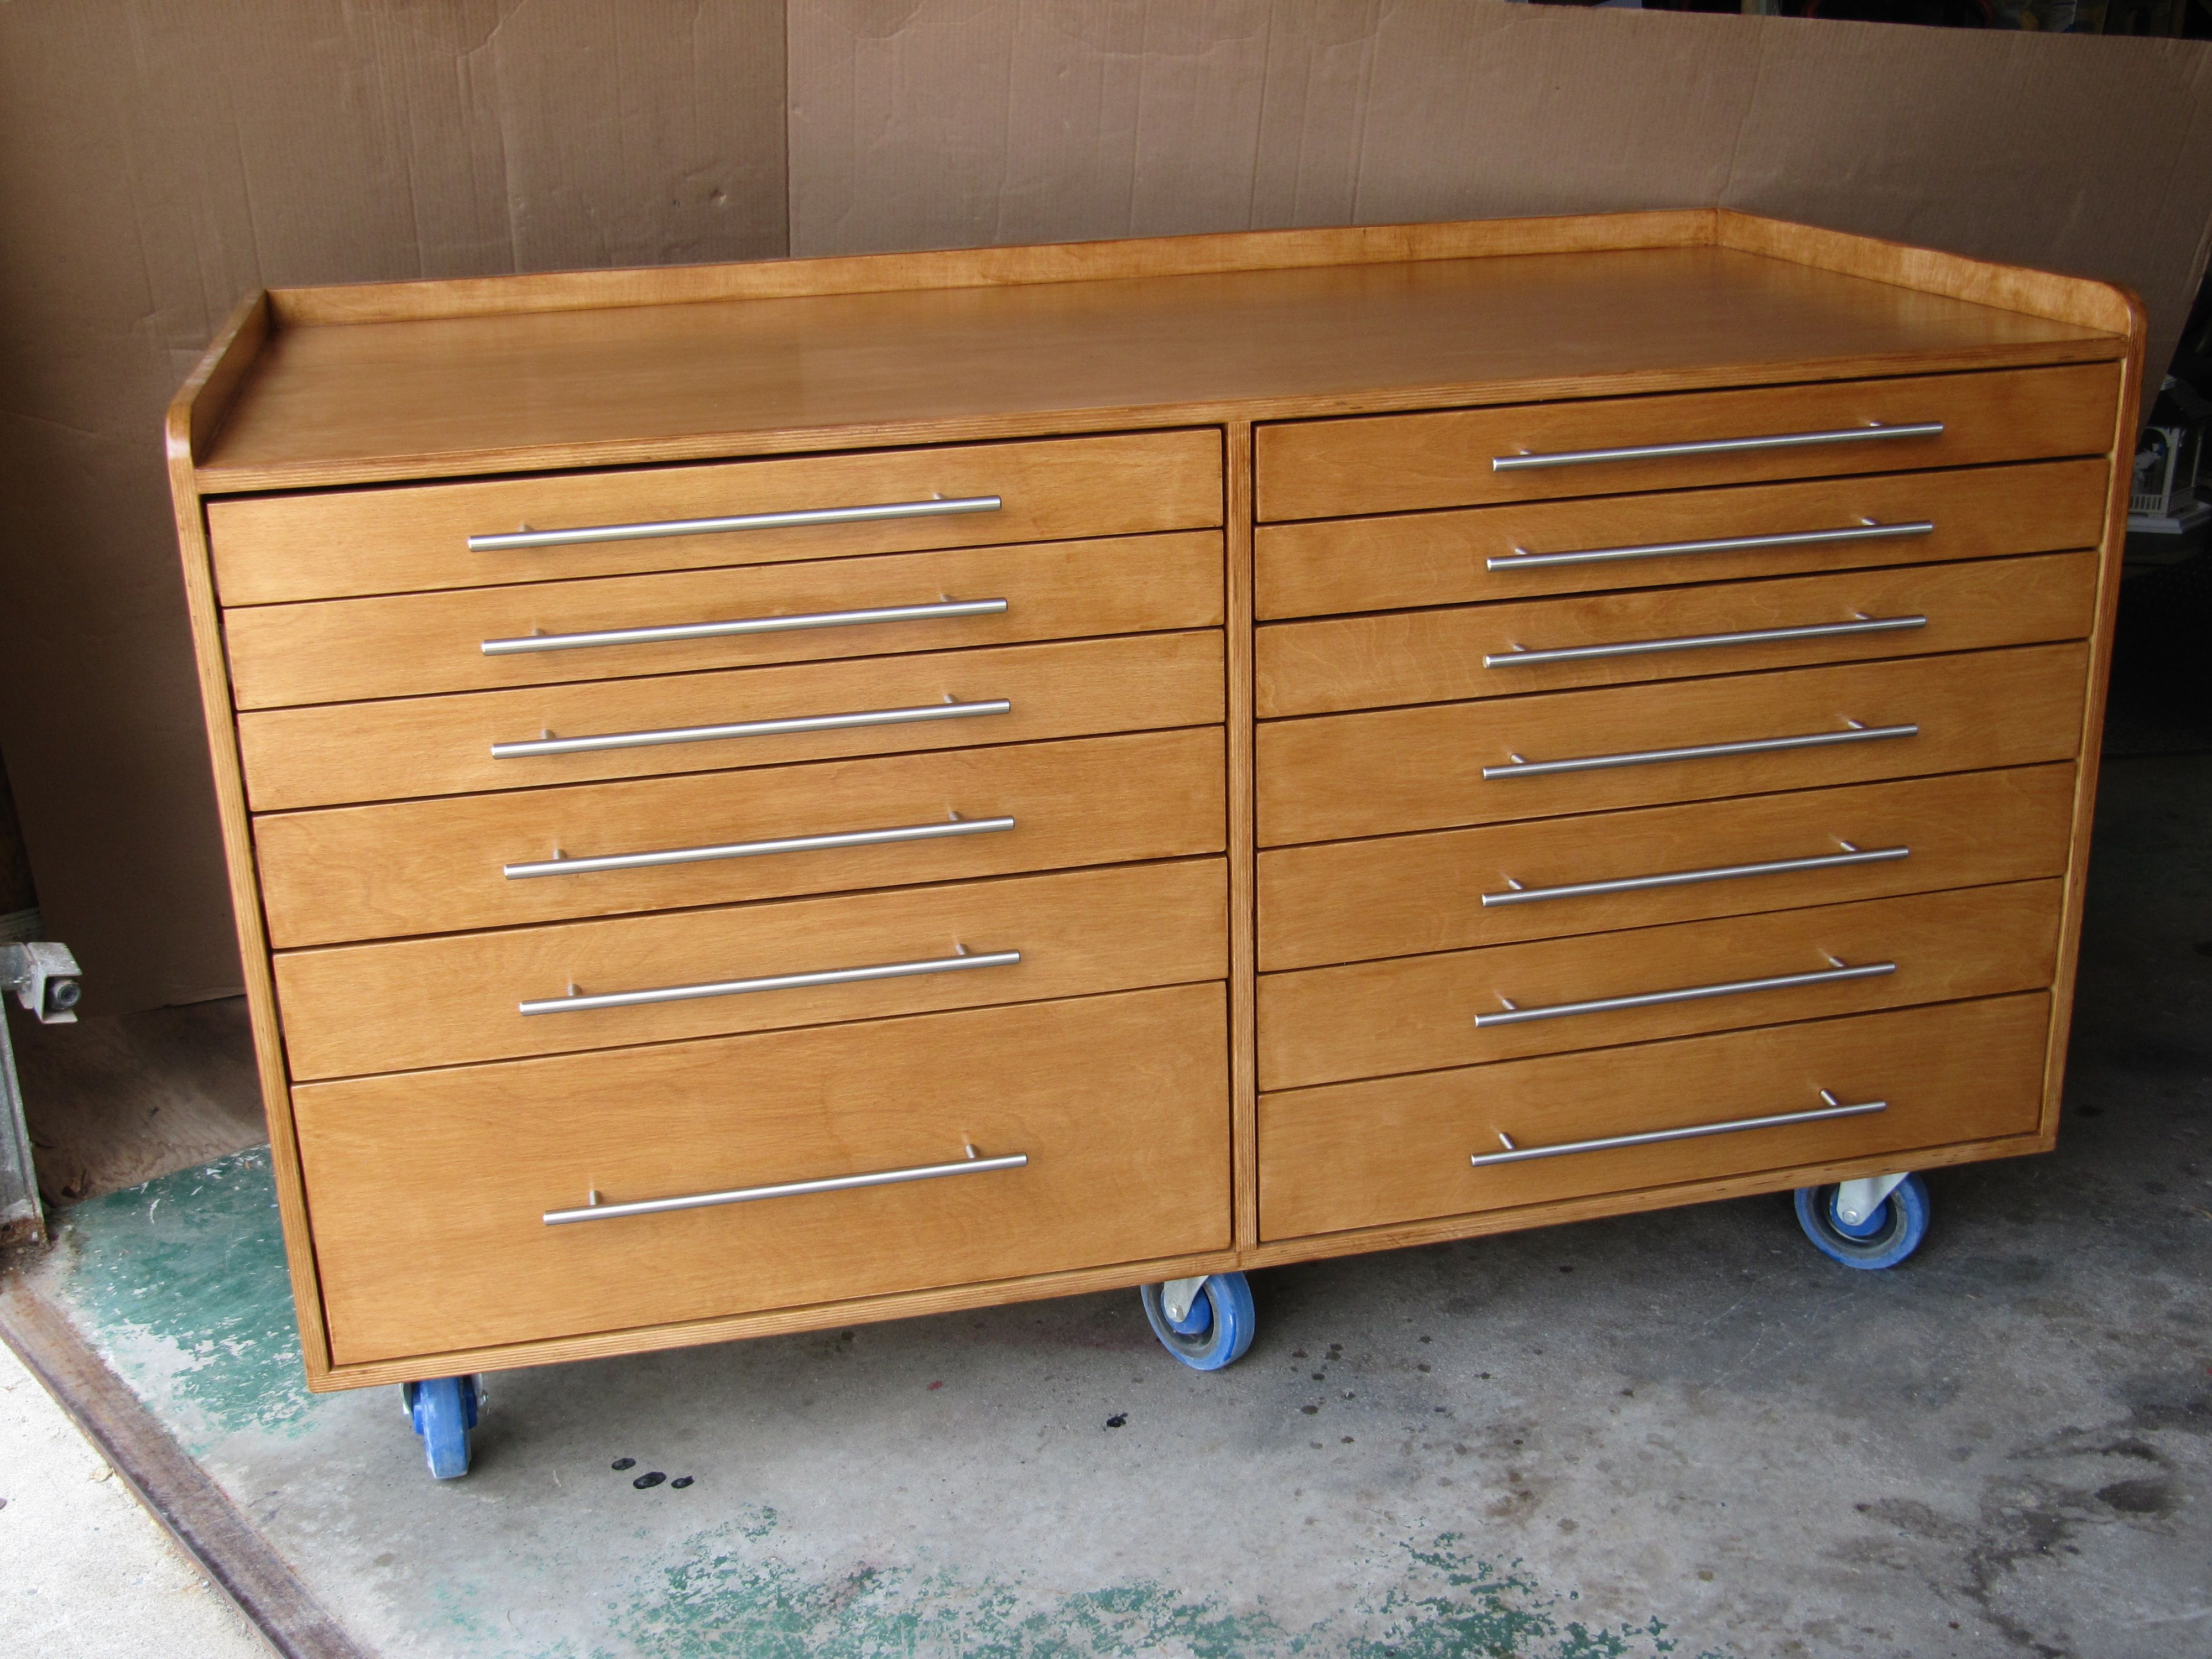 Birch Plywood Toolbox Diy Woodworking Woodworking Projects